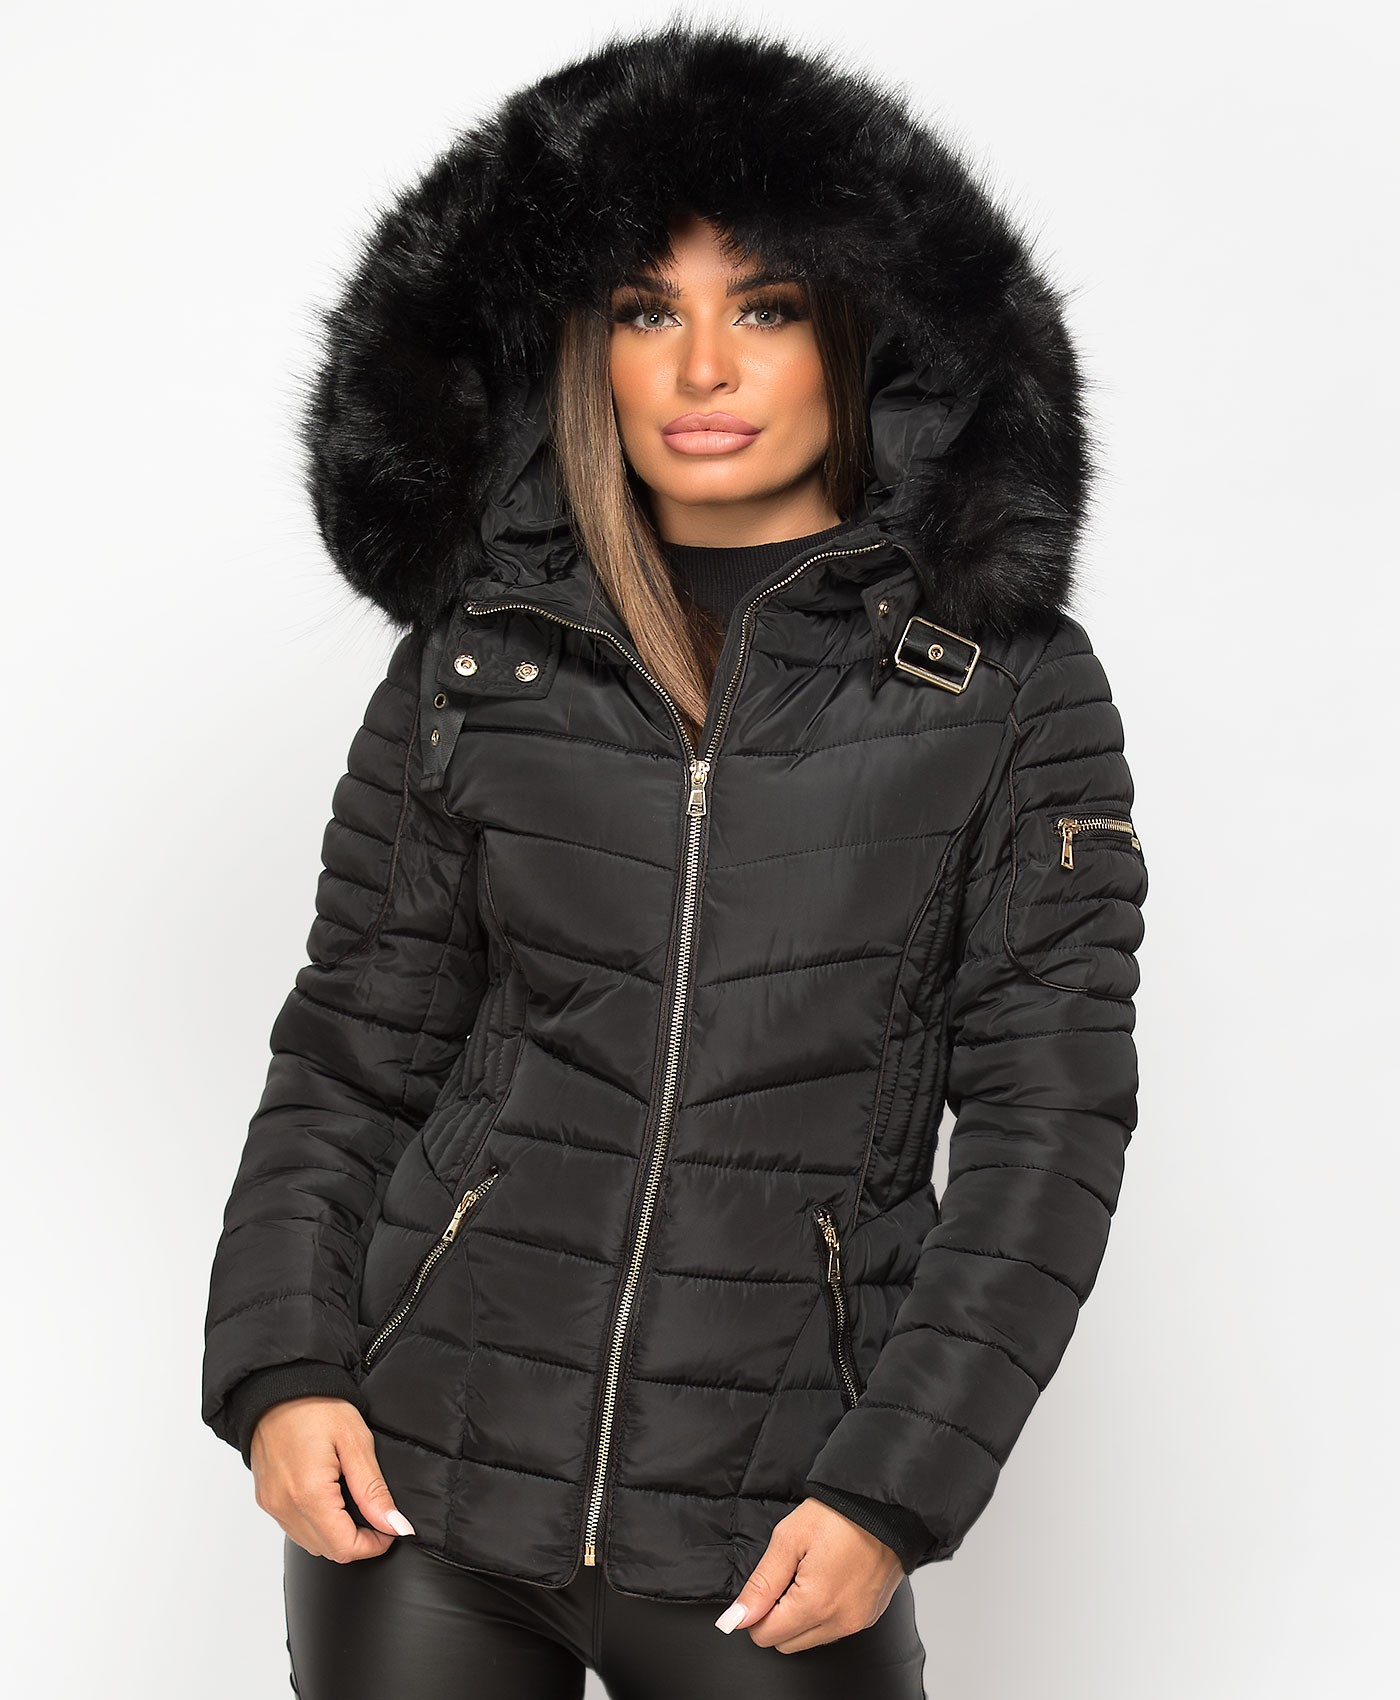 Black-Quilted-Padded-Piping-Detail-Fur-Hooded-Jacket-1a.jpg